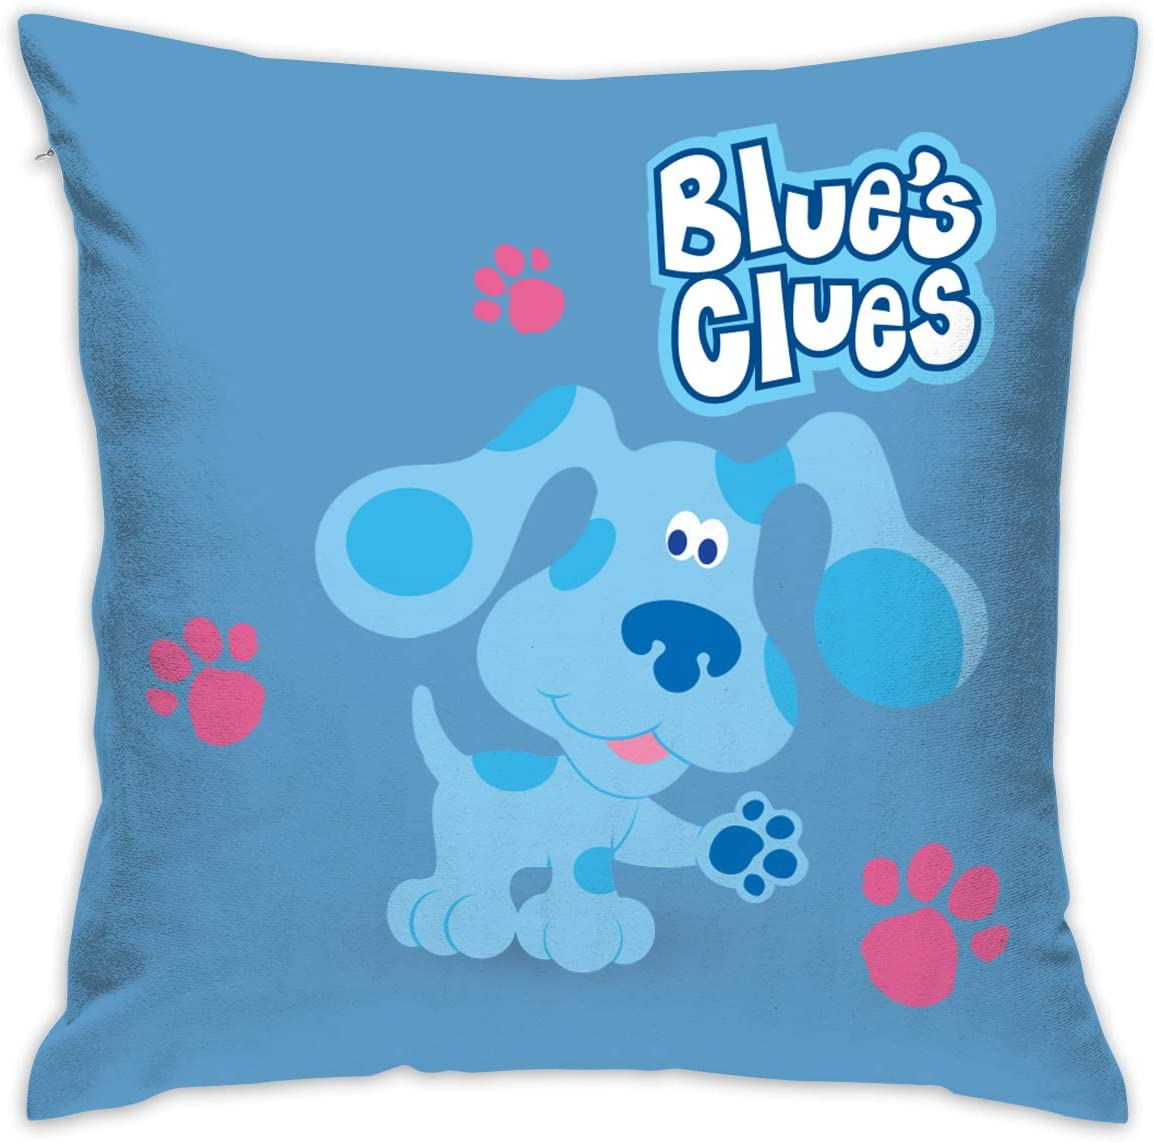 NNJD Blue's Clues Dog Decorative Reading Pillow Covers Case Pillowcases 18x18 in